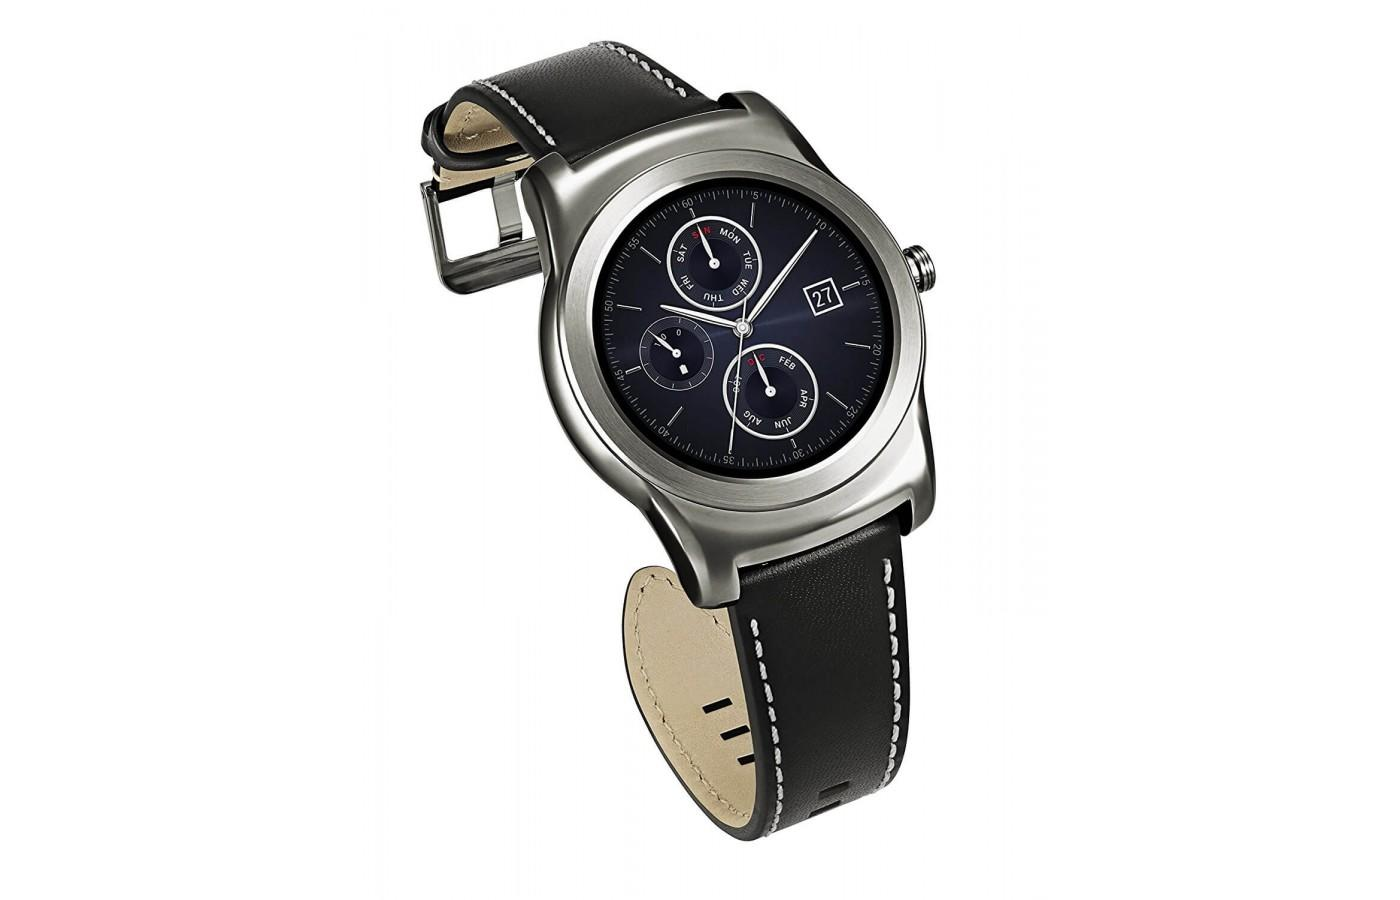 LG Watch Urbane has a built-in continuous heart rate monitor